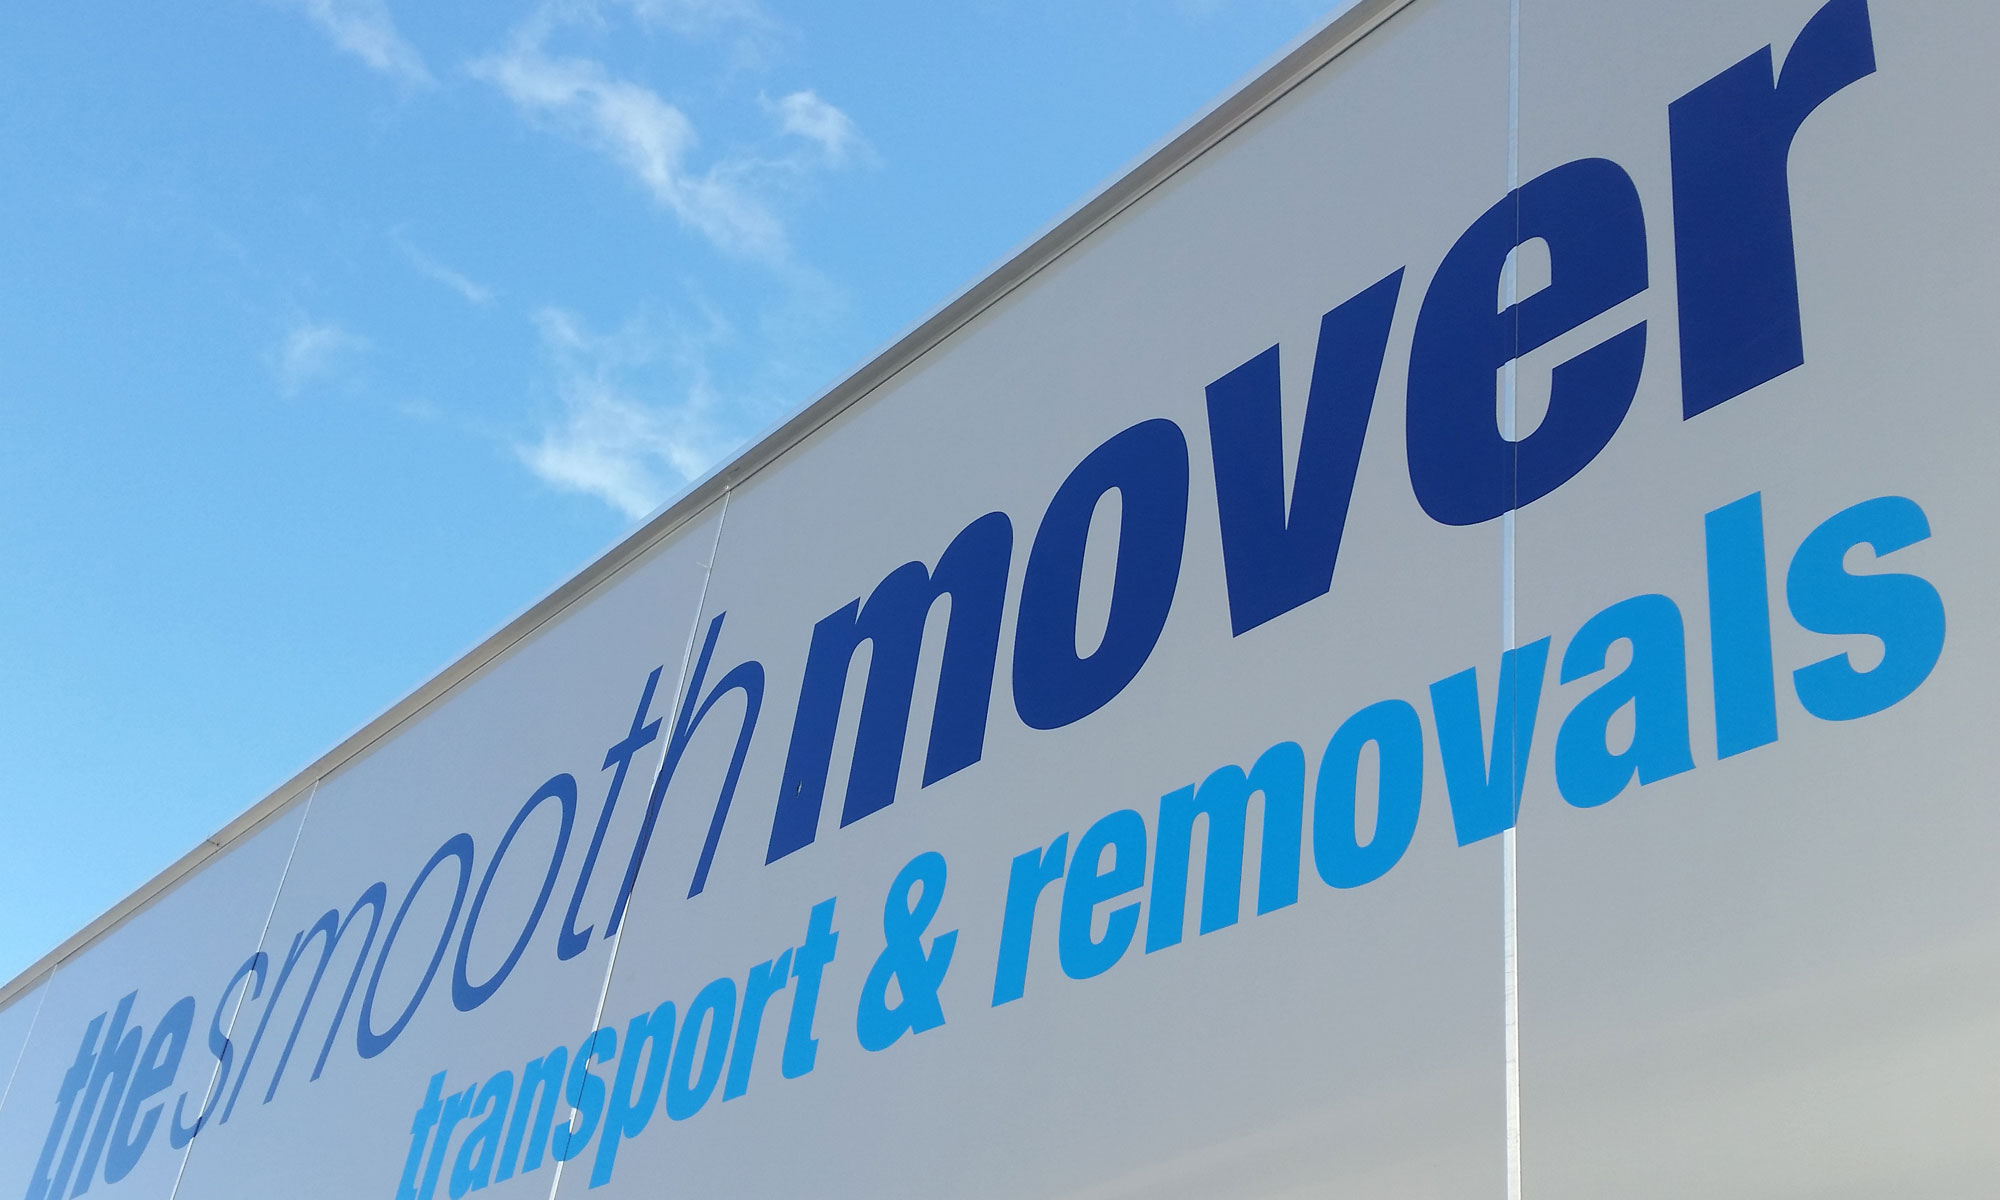 The Smooth Mover